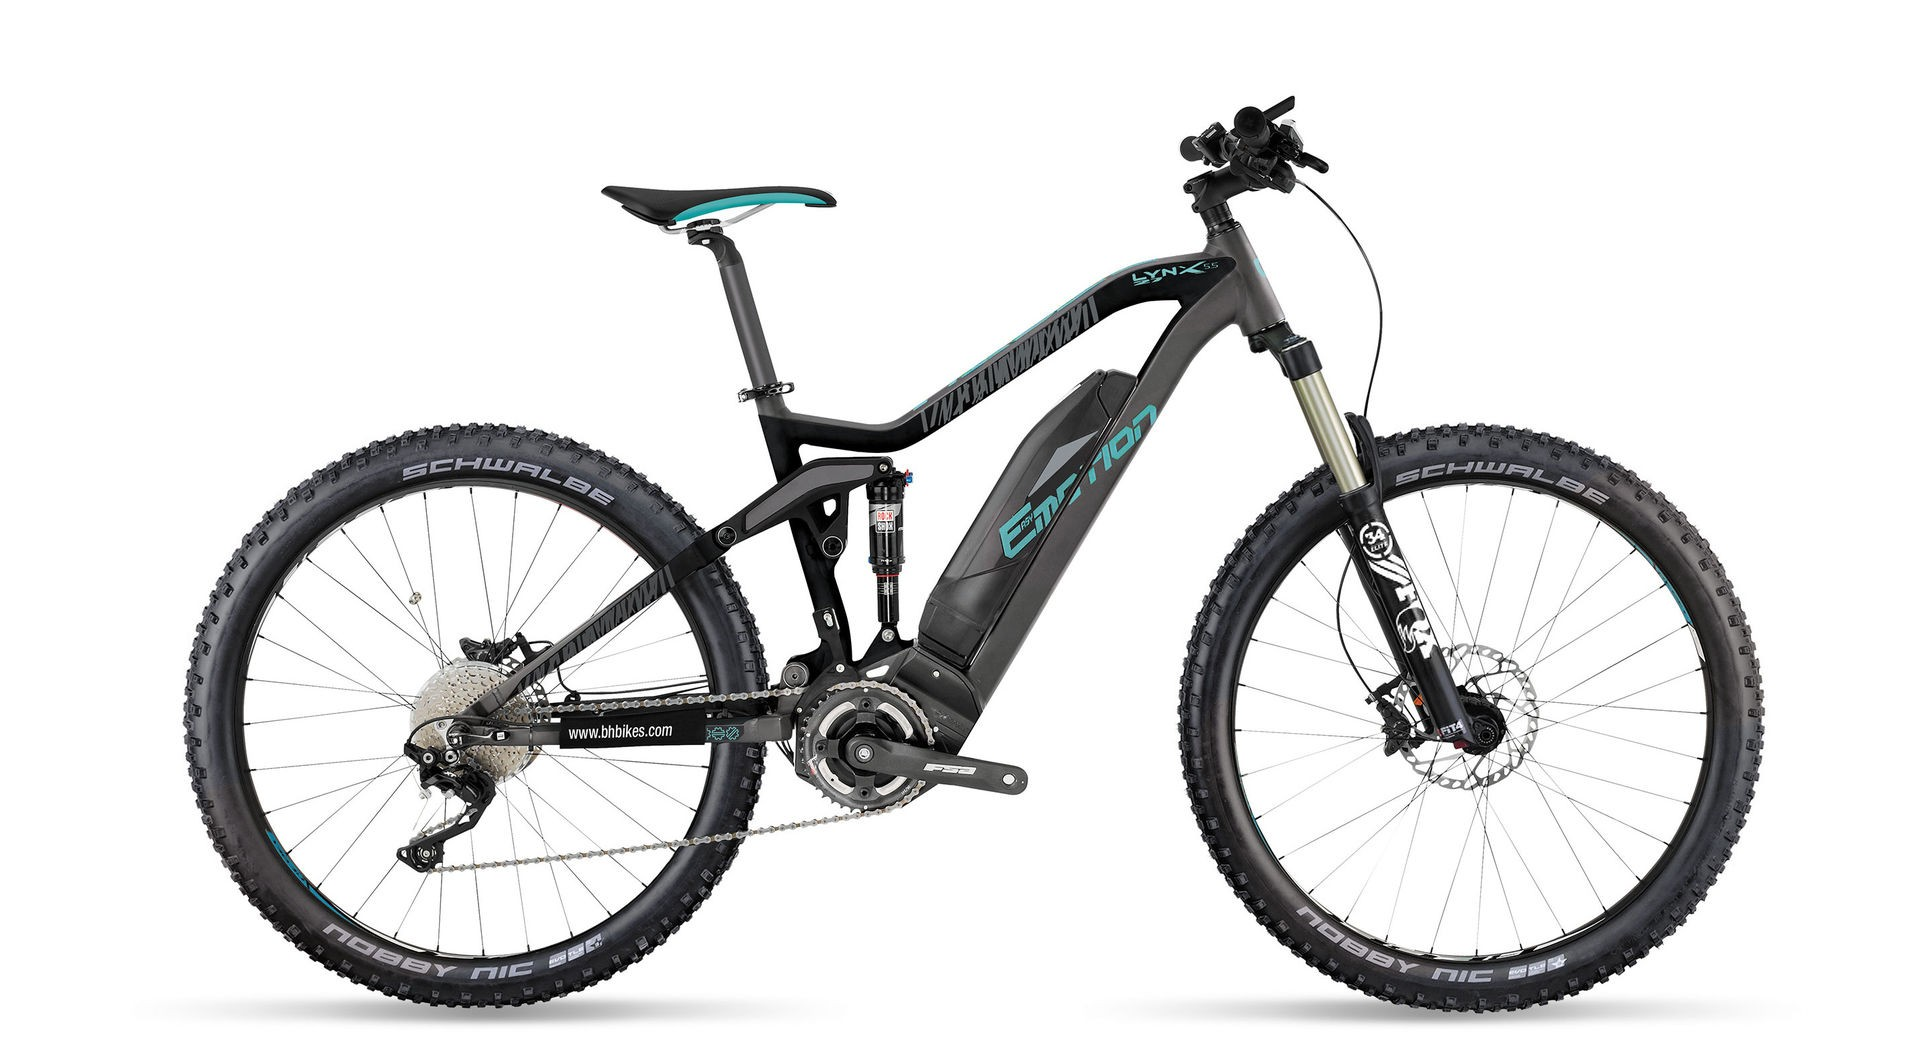 REBEL LYNX 5.5 27'5 PLUS PW-X 2017 BH BIKES 2017-6372